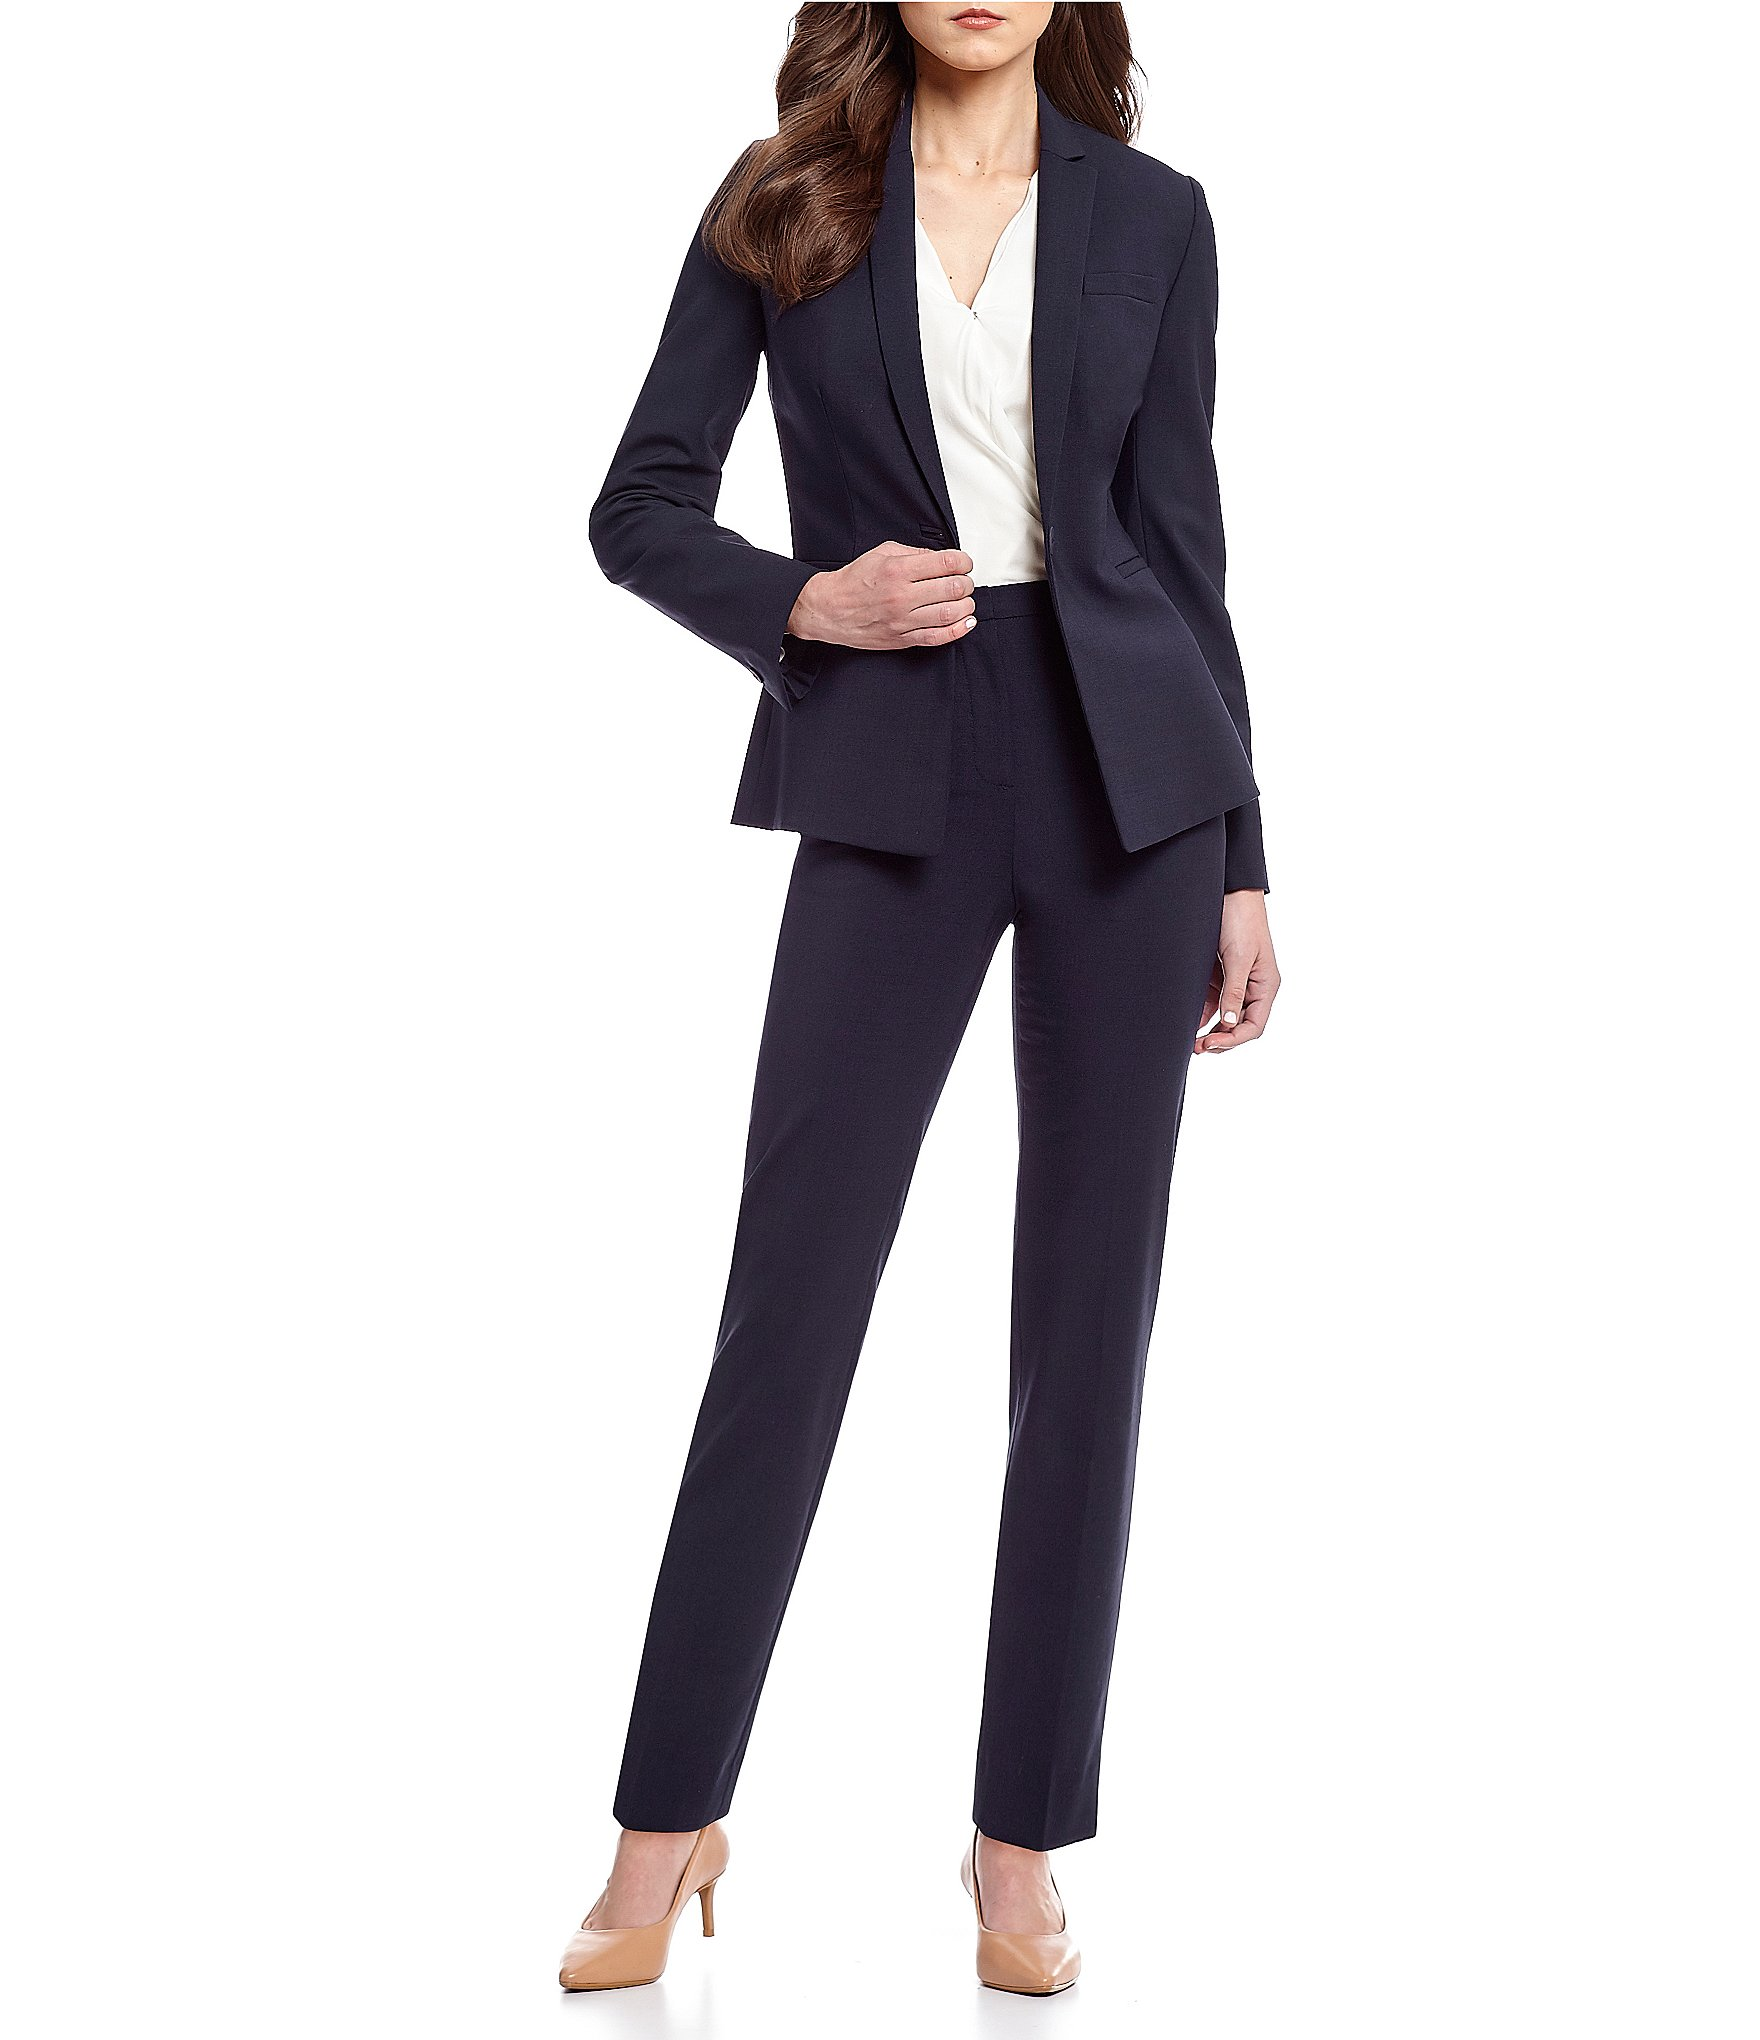 Antonio Melani Women S Work Suits Dillard S